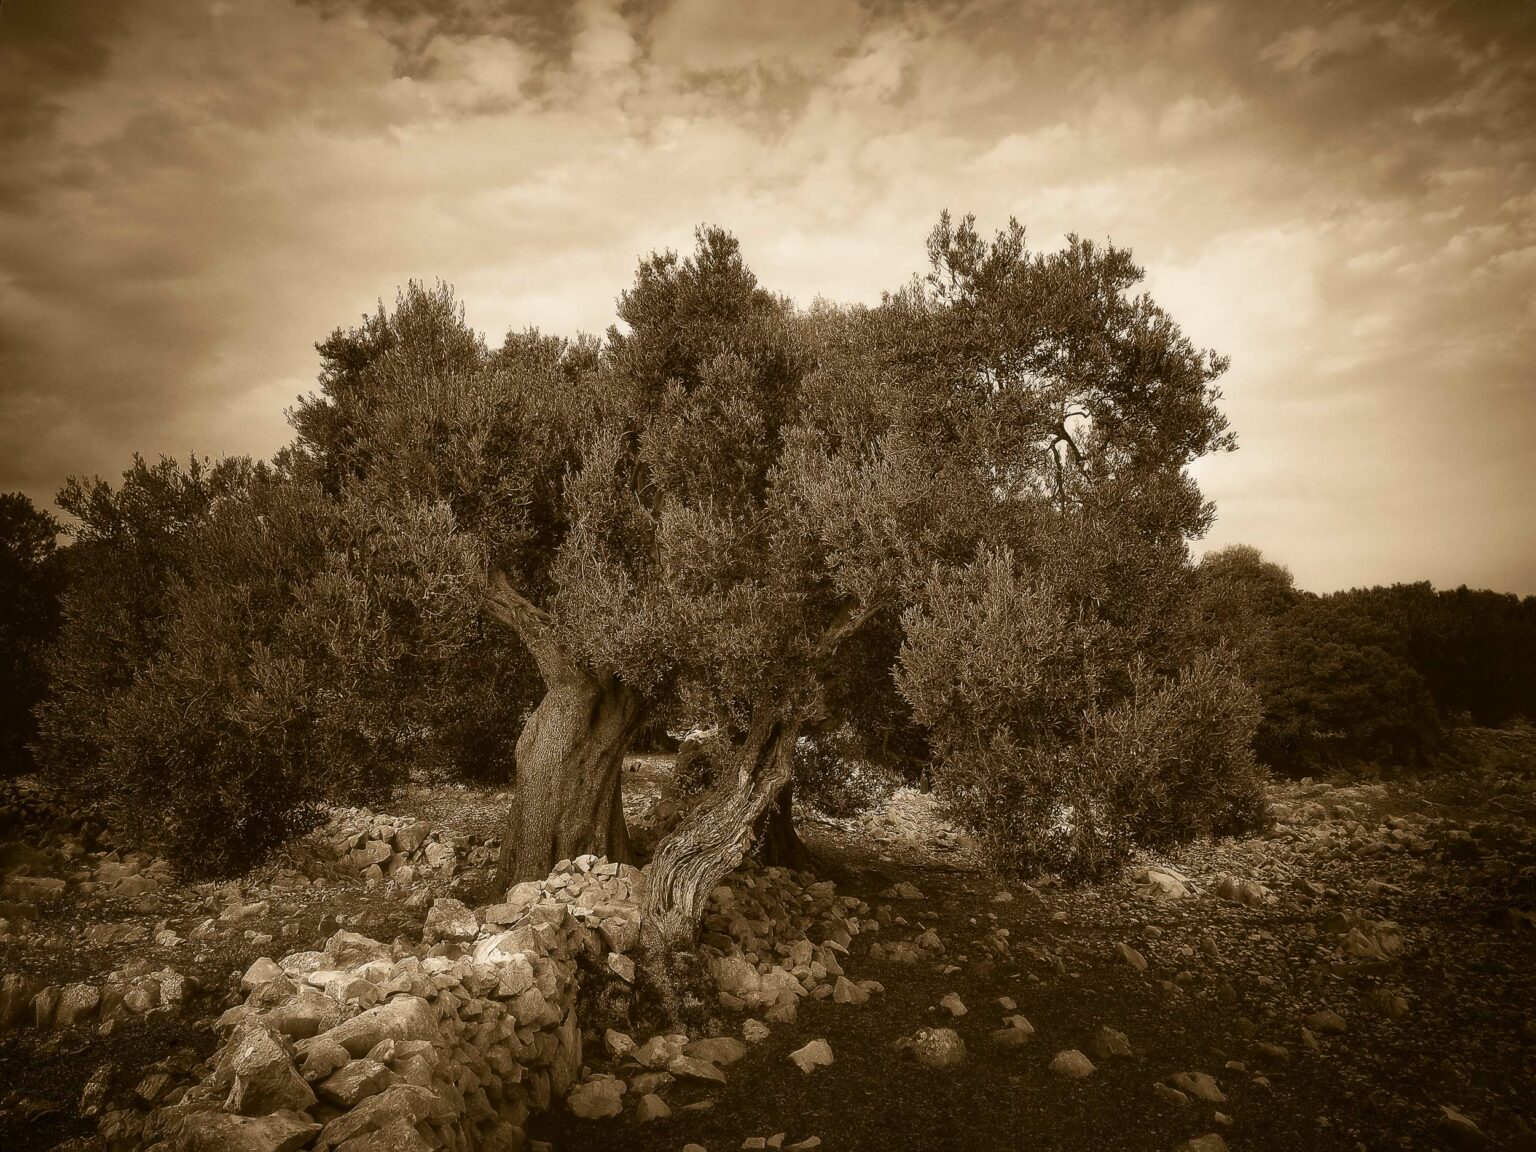 peter podpera landscape photography olive trees lun pag croatia 7187414